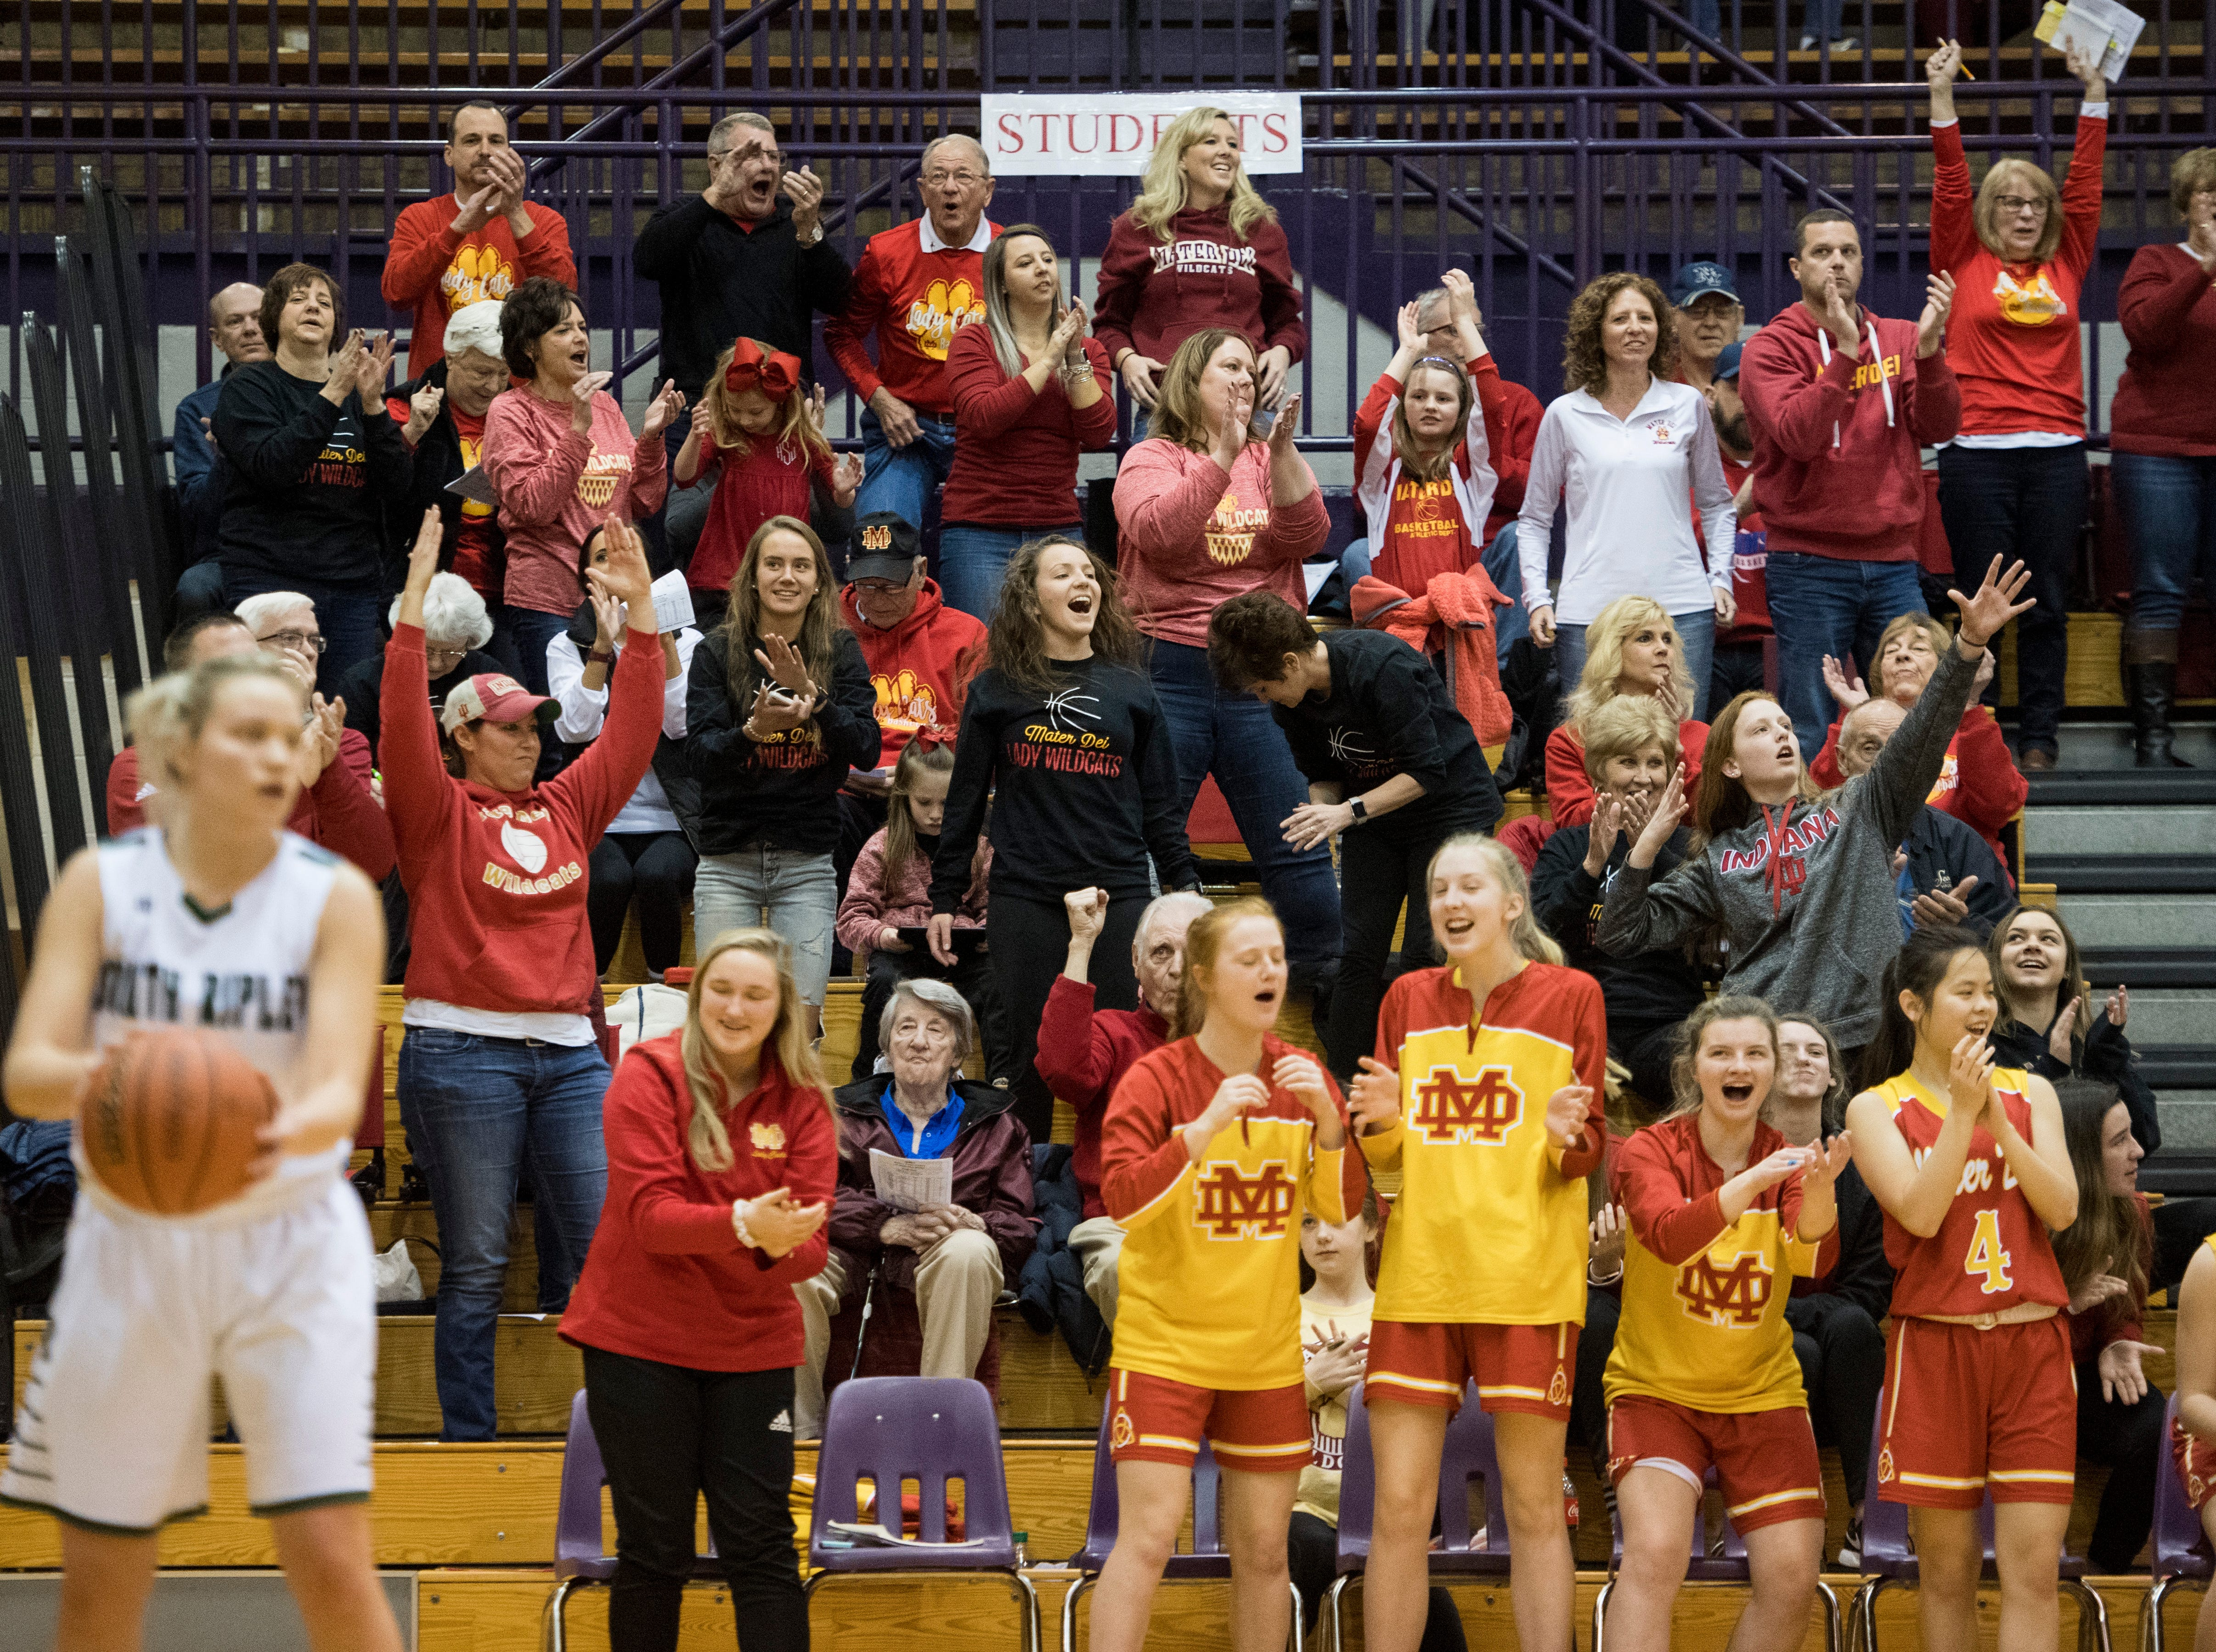 The Mater Dei fan sections erupts as the Wildcats makes another basket during the IHSAA Class 2A Girls' Basketball Regional #12 game against the South Ripley Raiders at Paoli Jr. Sr. high school Saturday, Feb. 9, 2019. Mater Dei Won, 39-23.